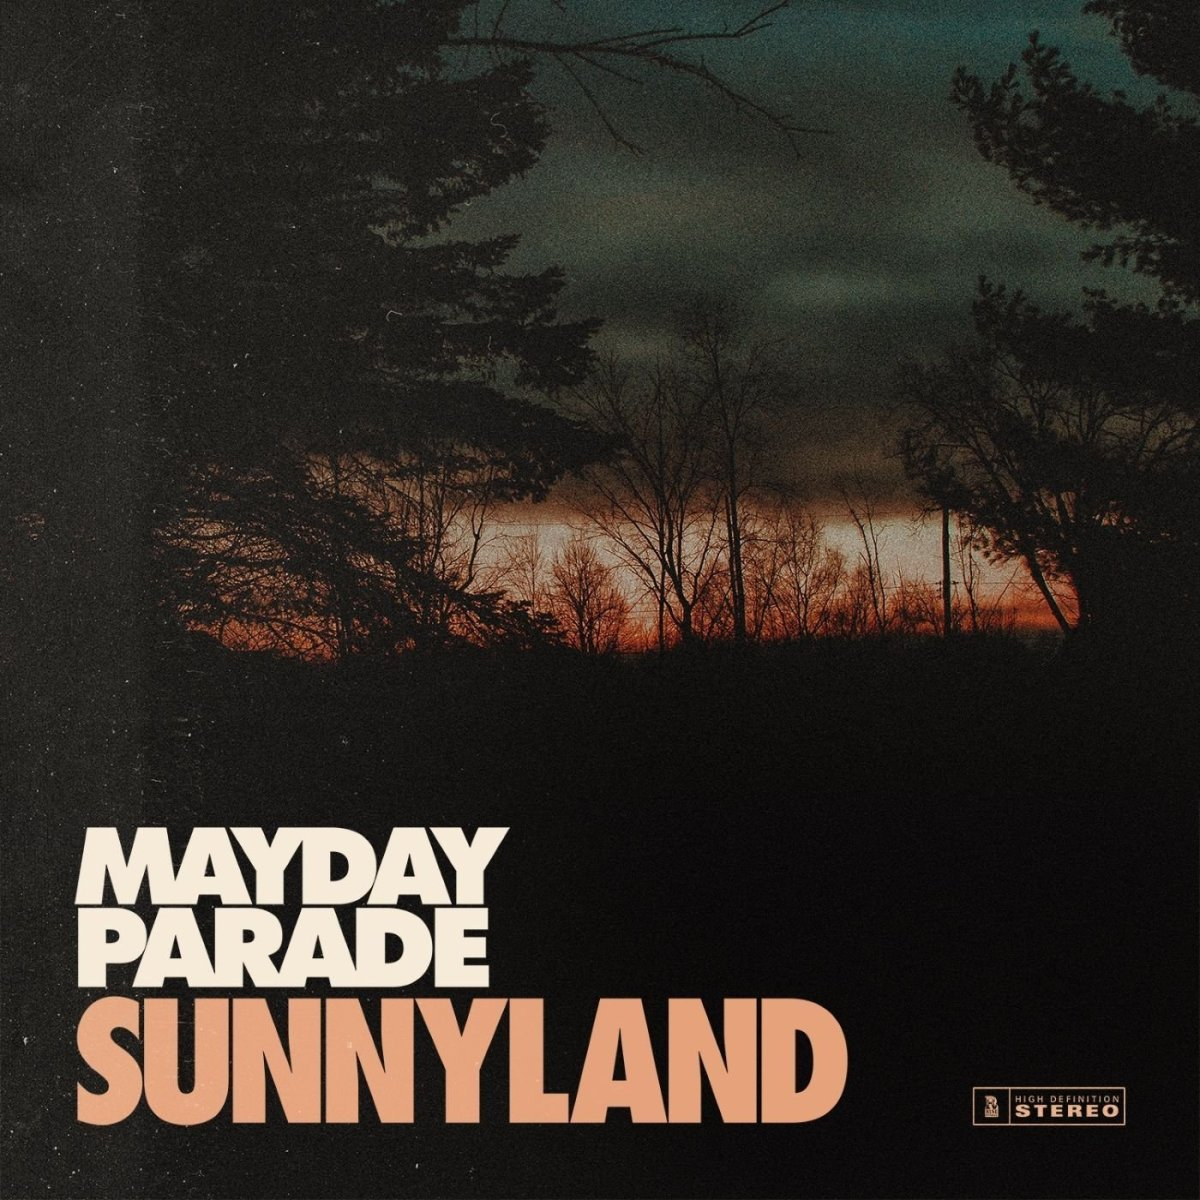 Mayday Parade - Sunnyland (Album Review)